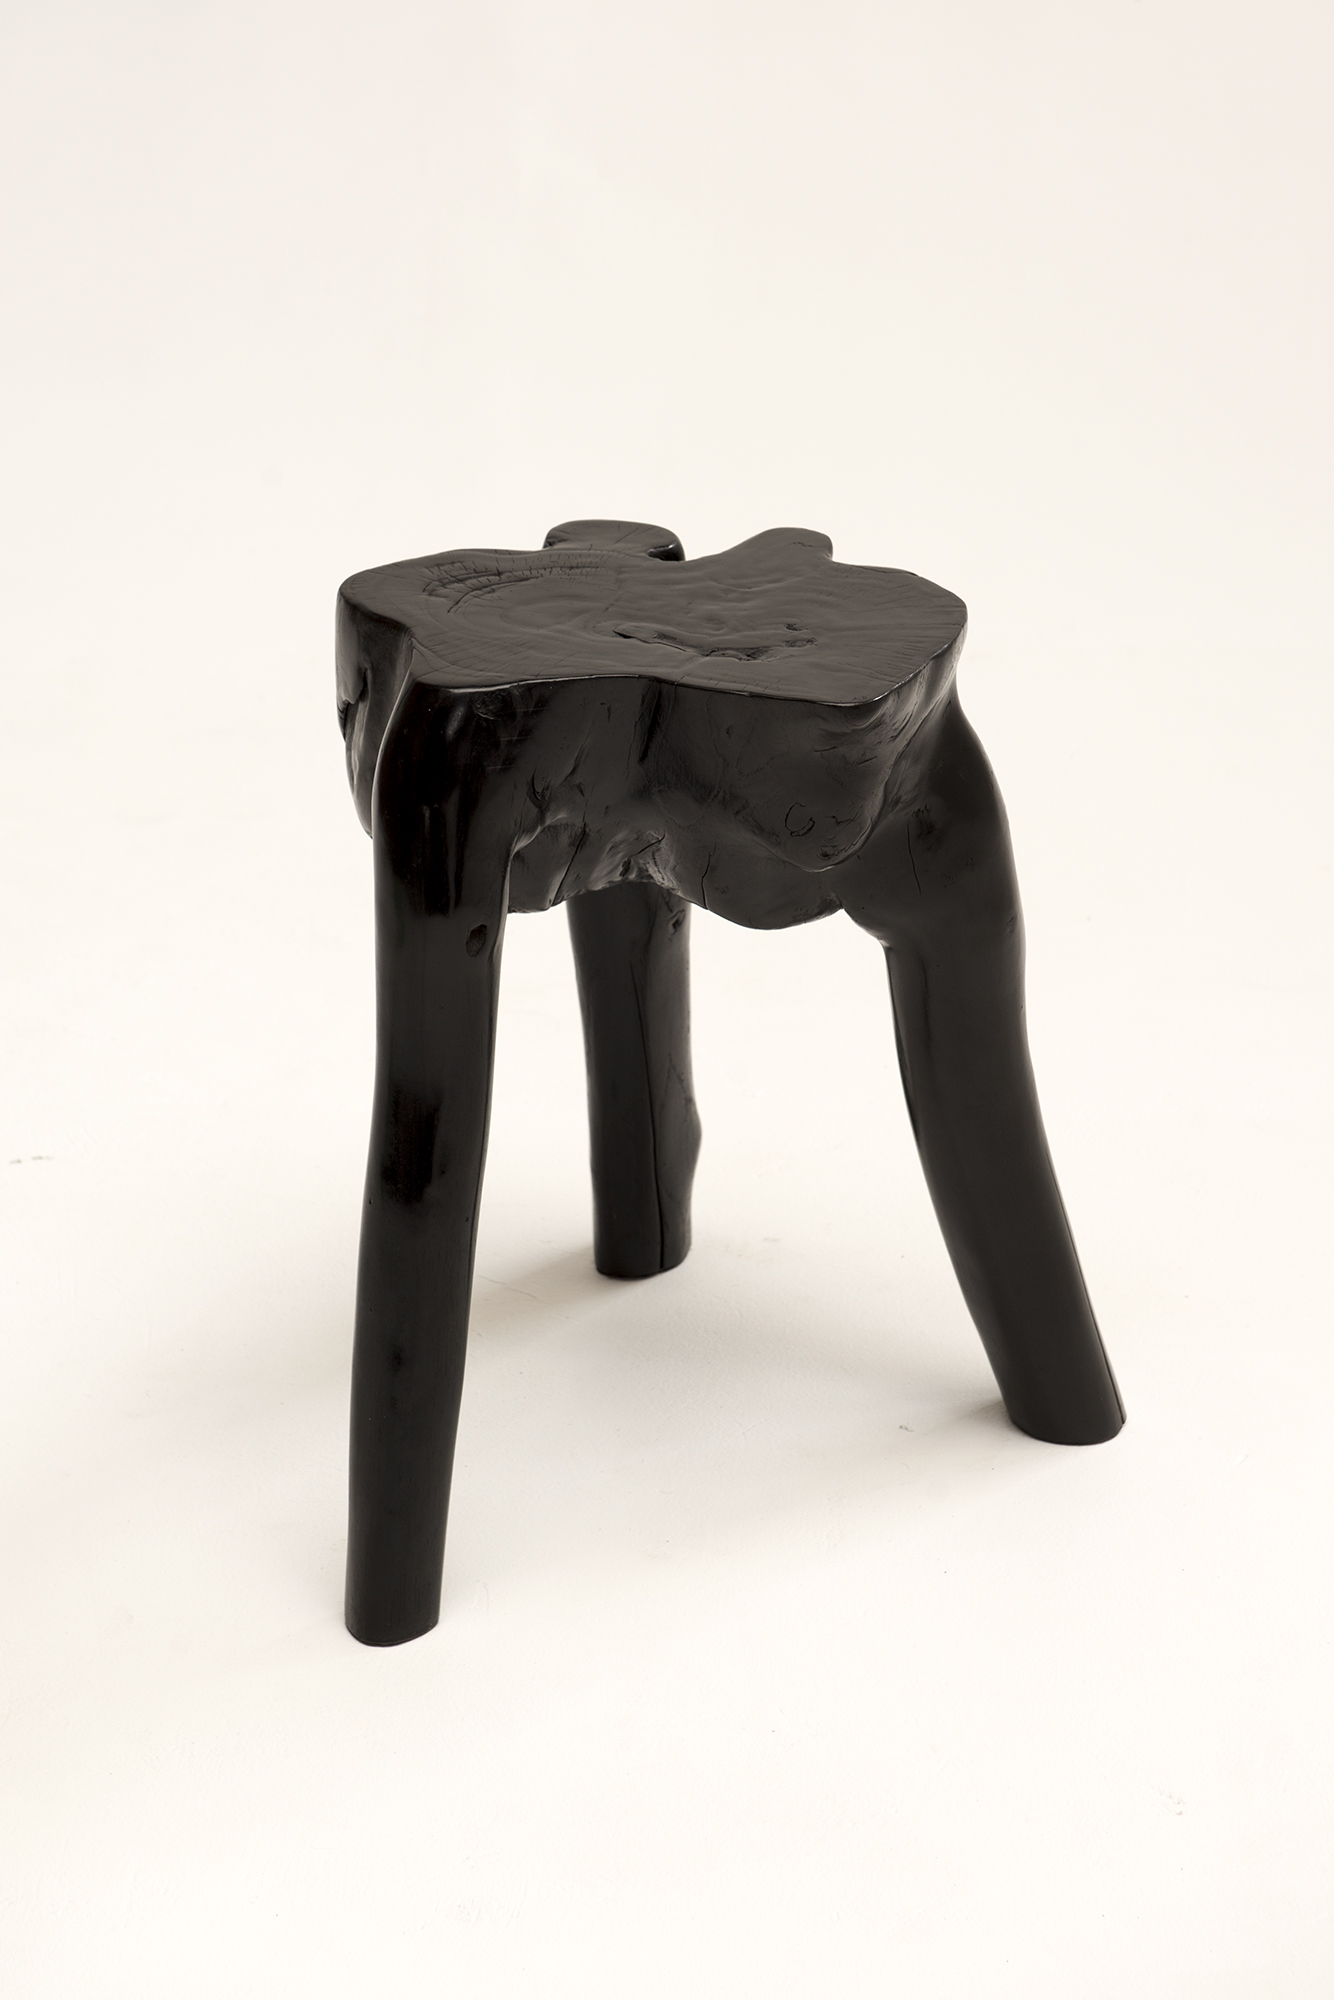 Chista / Furniture / Stools / Root Stools